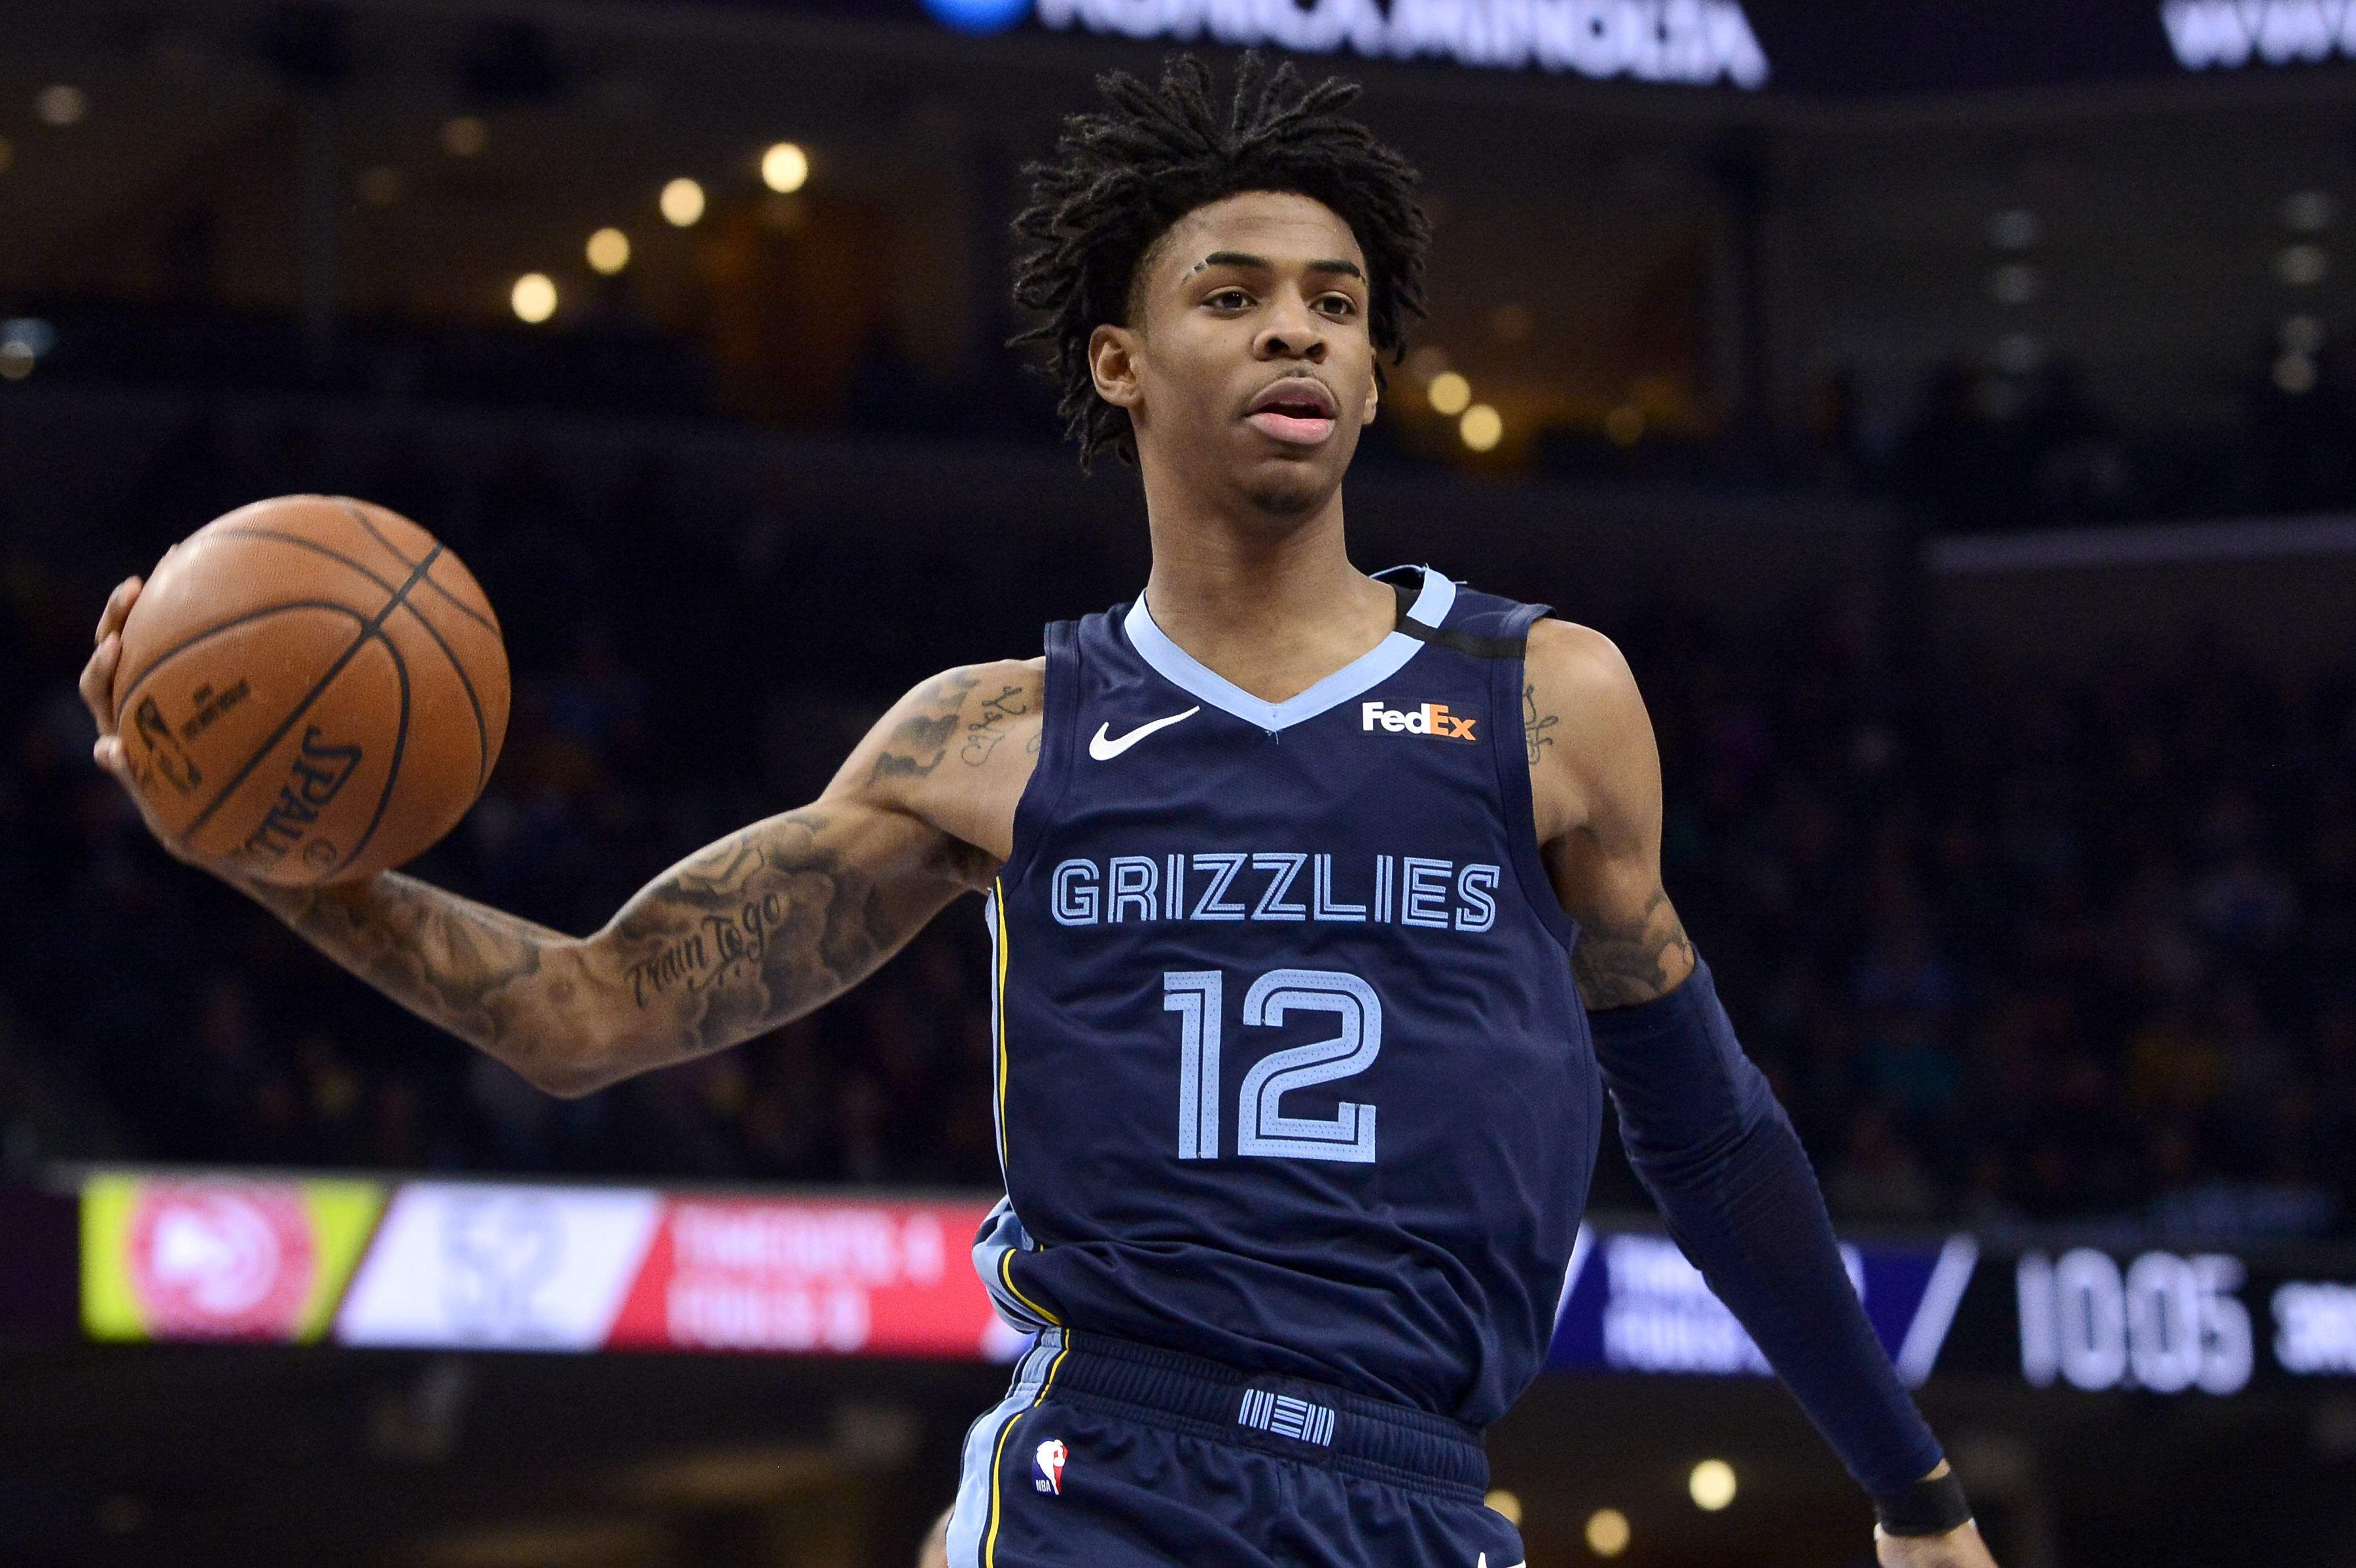 Memphis Grizzlies guard Ja Morant (12) plays in the second half of an NBA basketball game against the Atlanta Hawks Saturday, March 7, 2020, in Memphis, Tenn. (AP Photo/Brandon Dill)